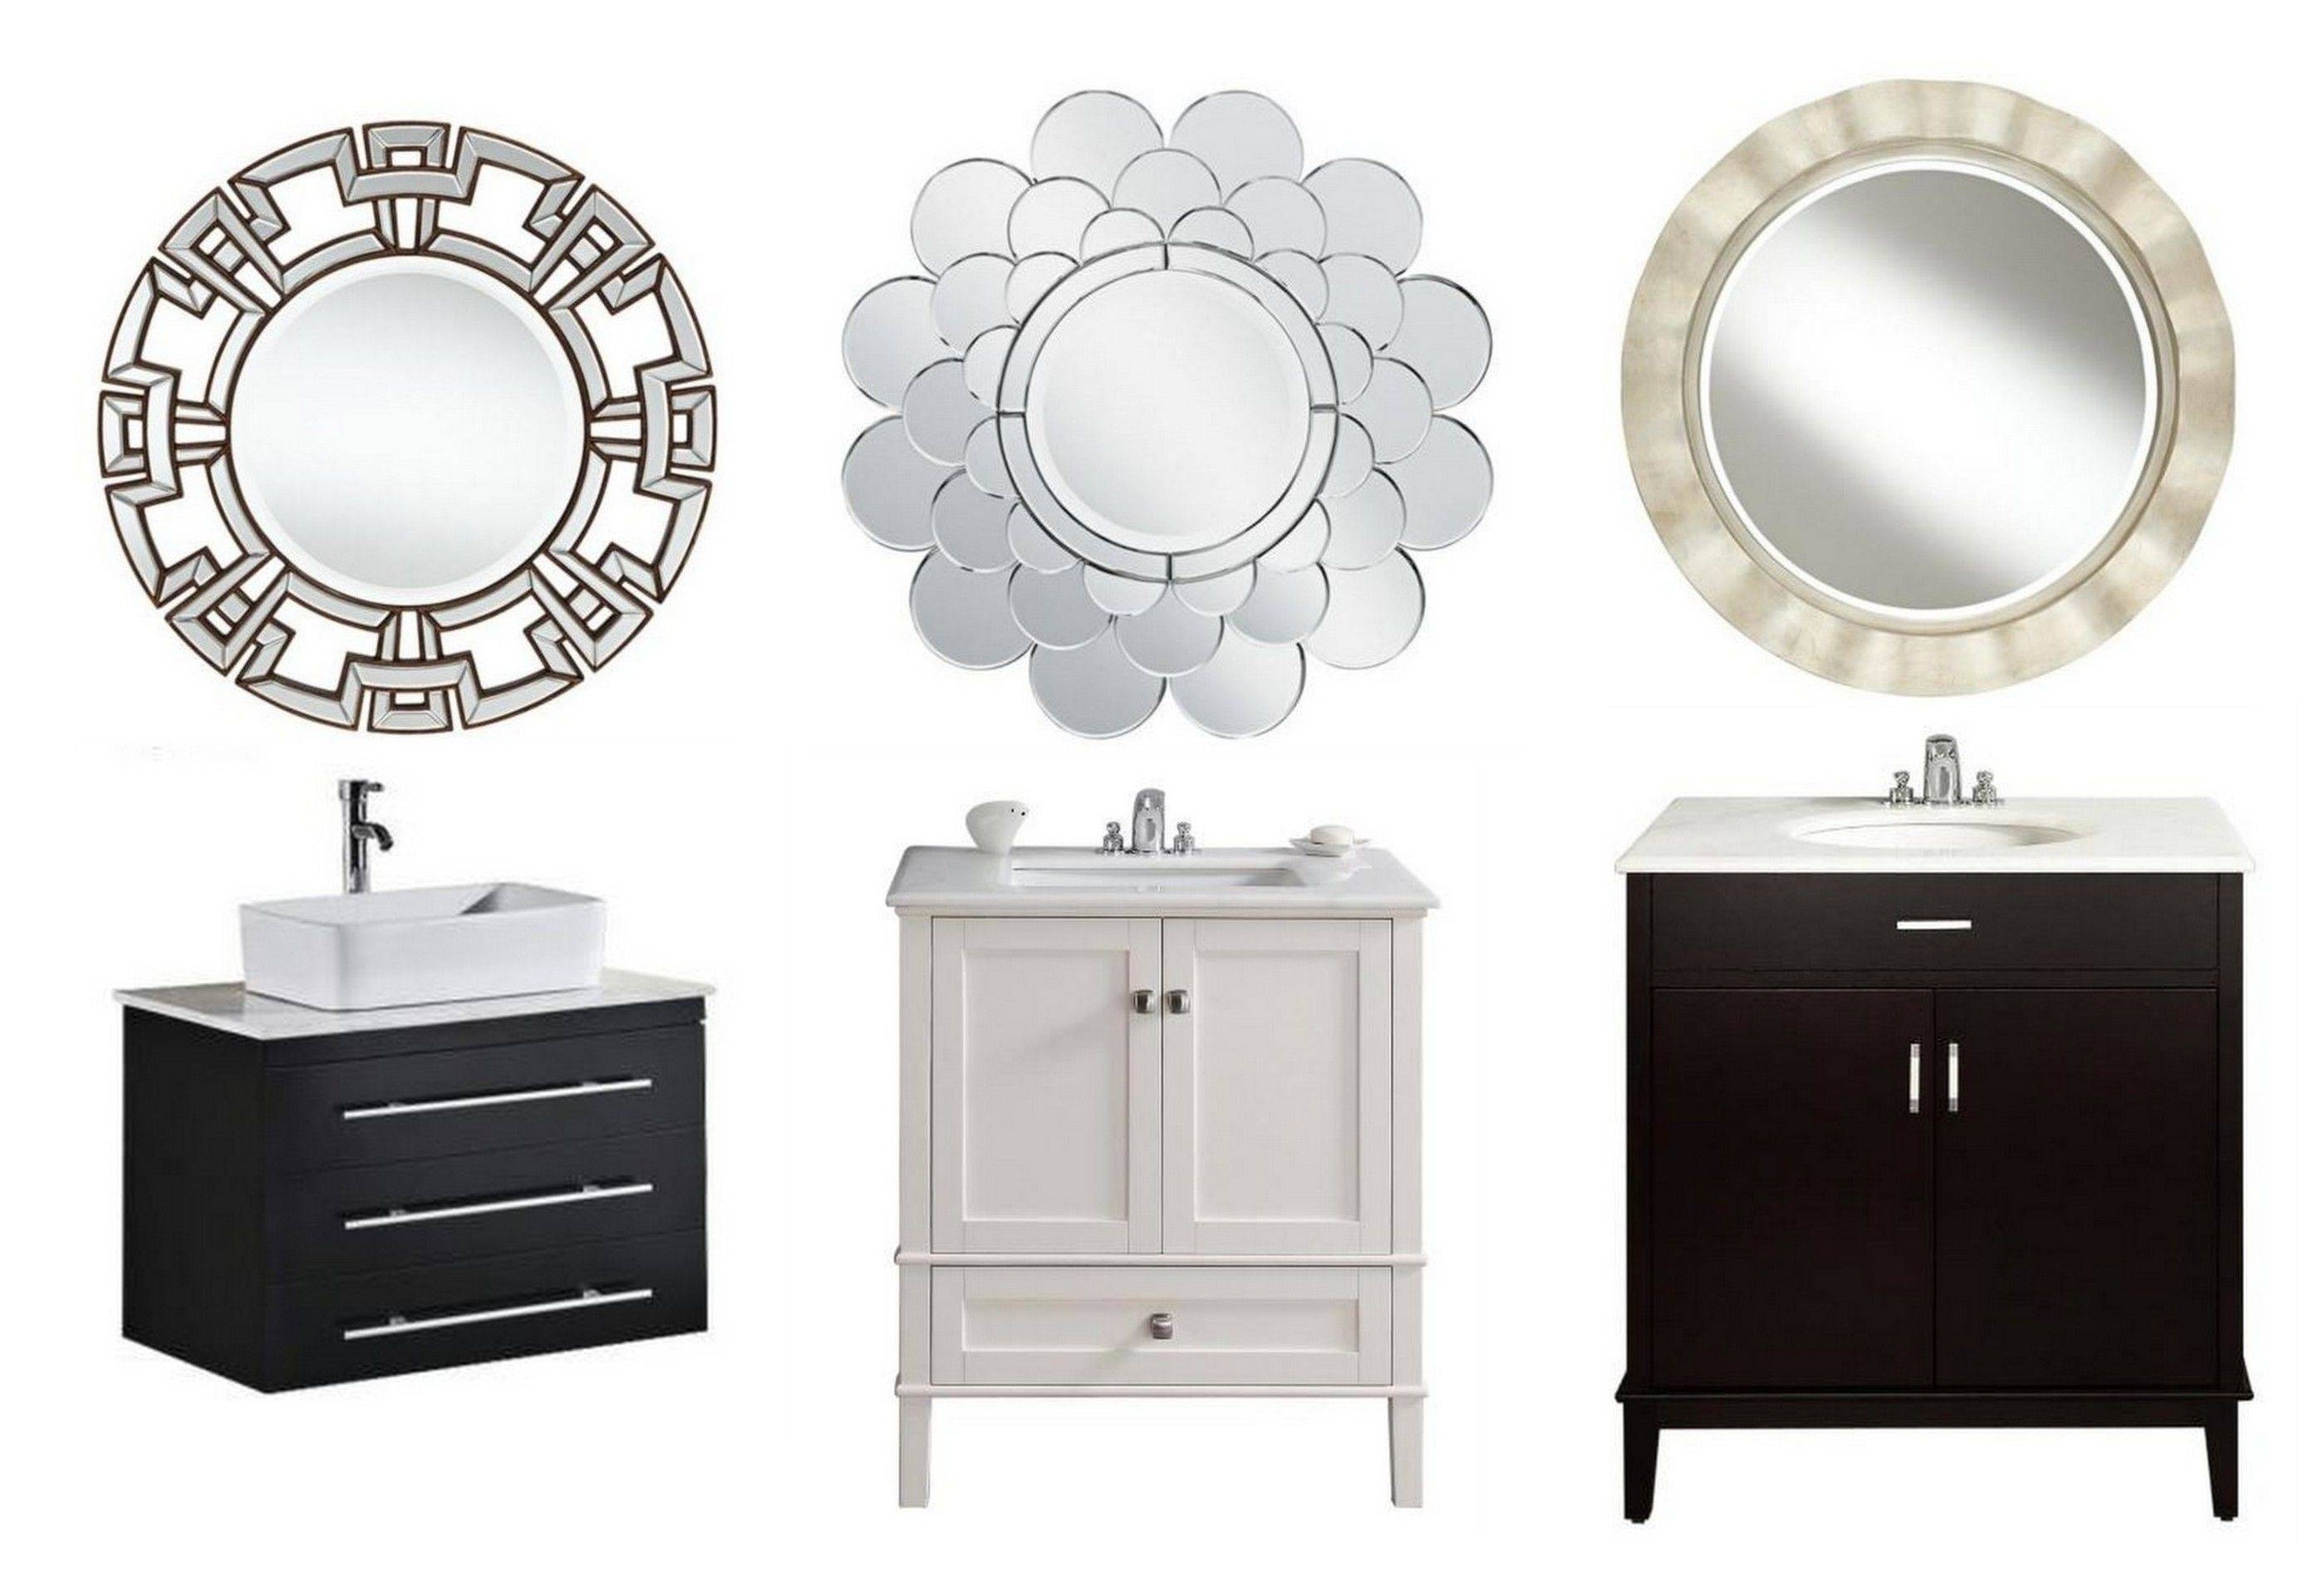 Decorative Mirrors For Bathroom – Harpsounds.co with White Decorative Mirrors (Image 12 of 25)